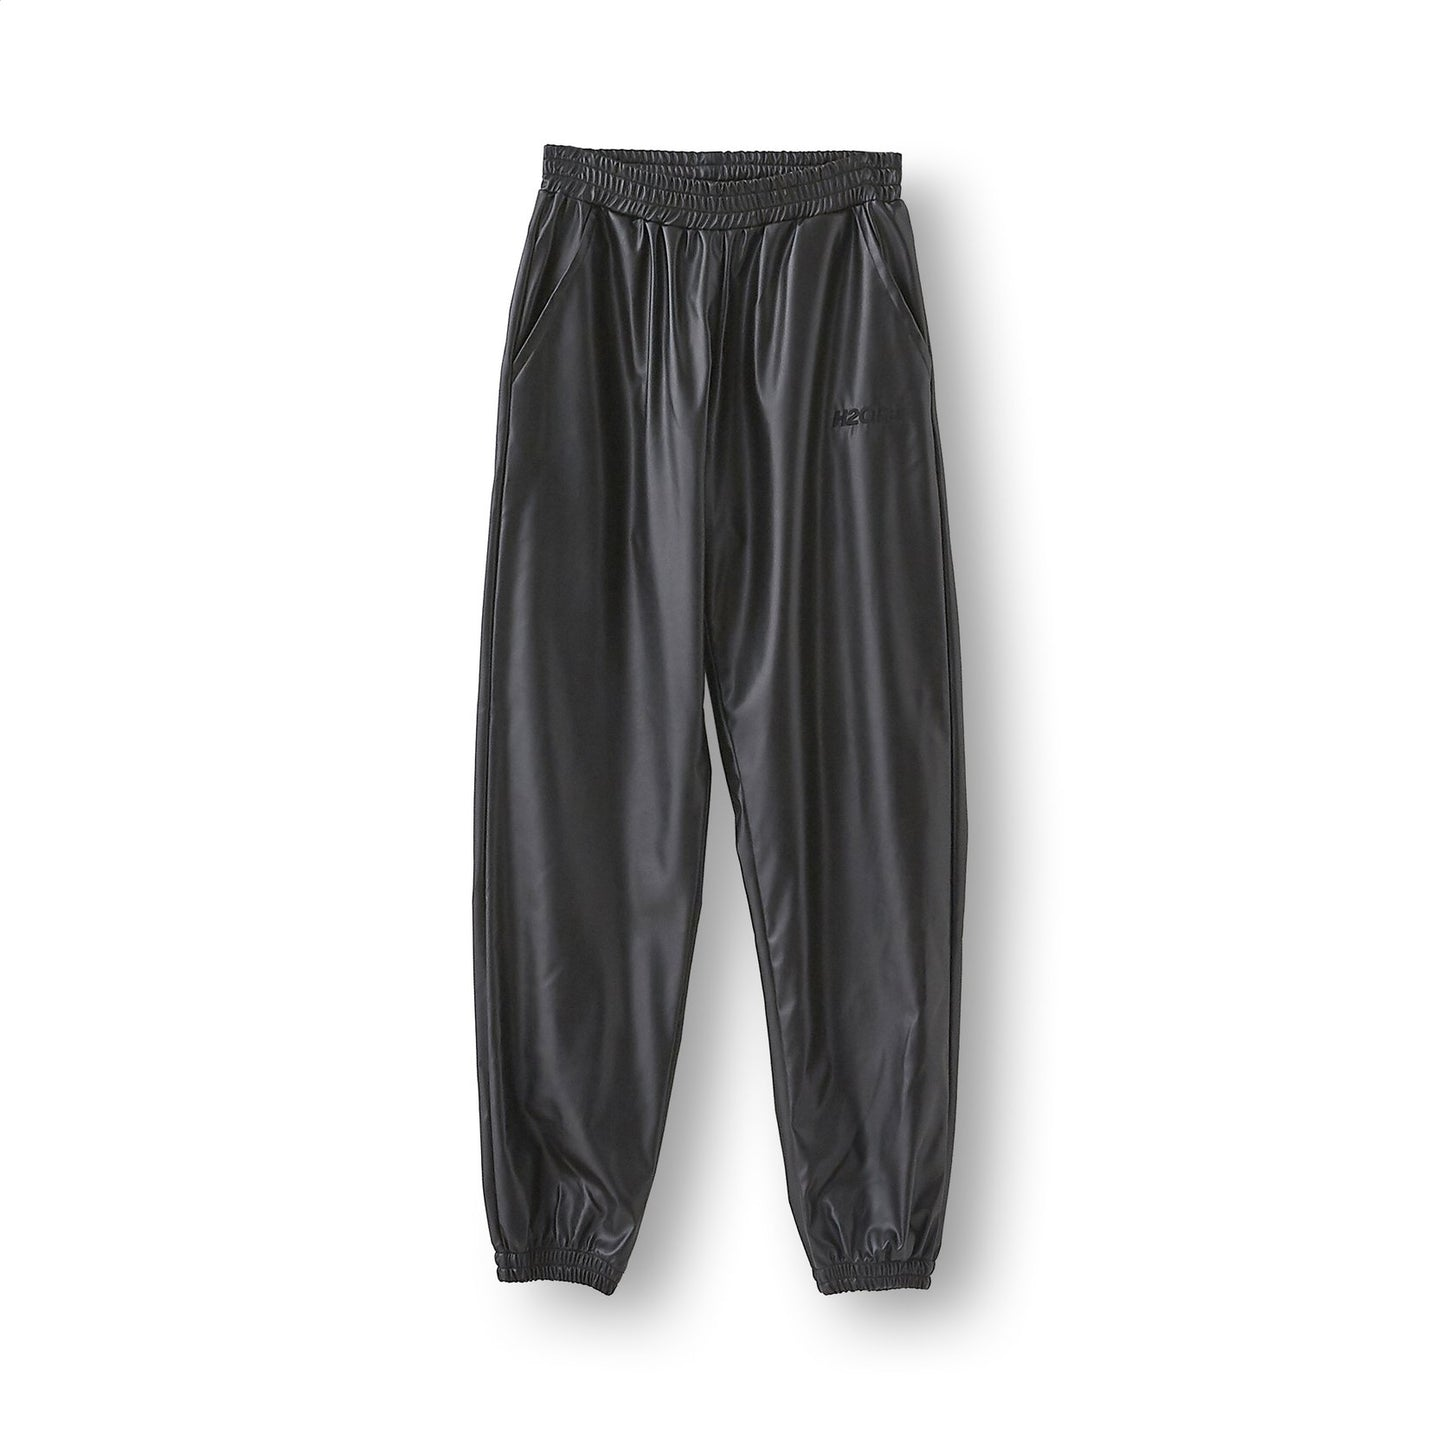 Fake Leather Tracksuit Pant - Black H2O FAGERHOLT